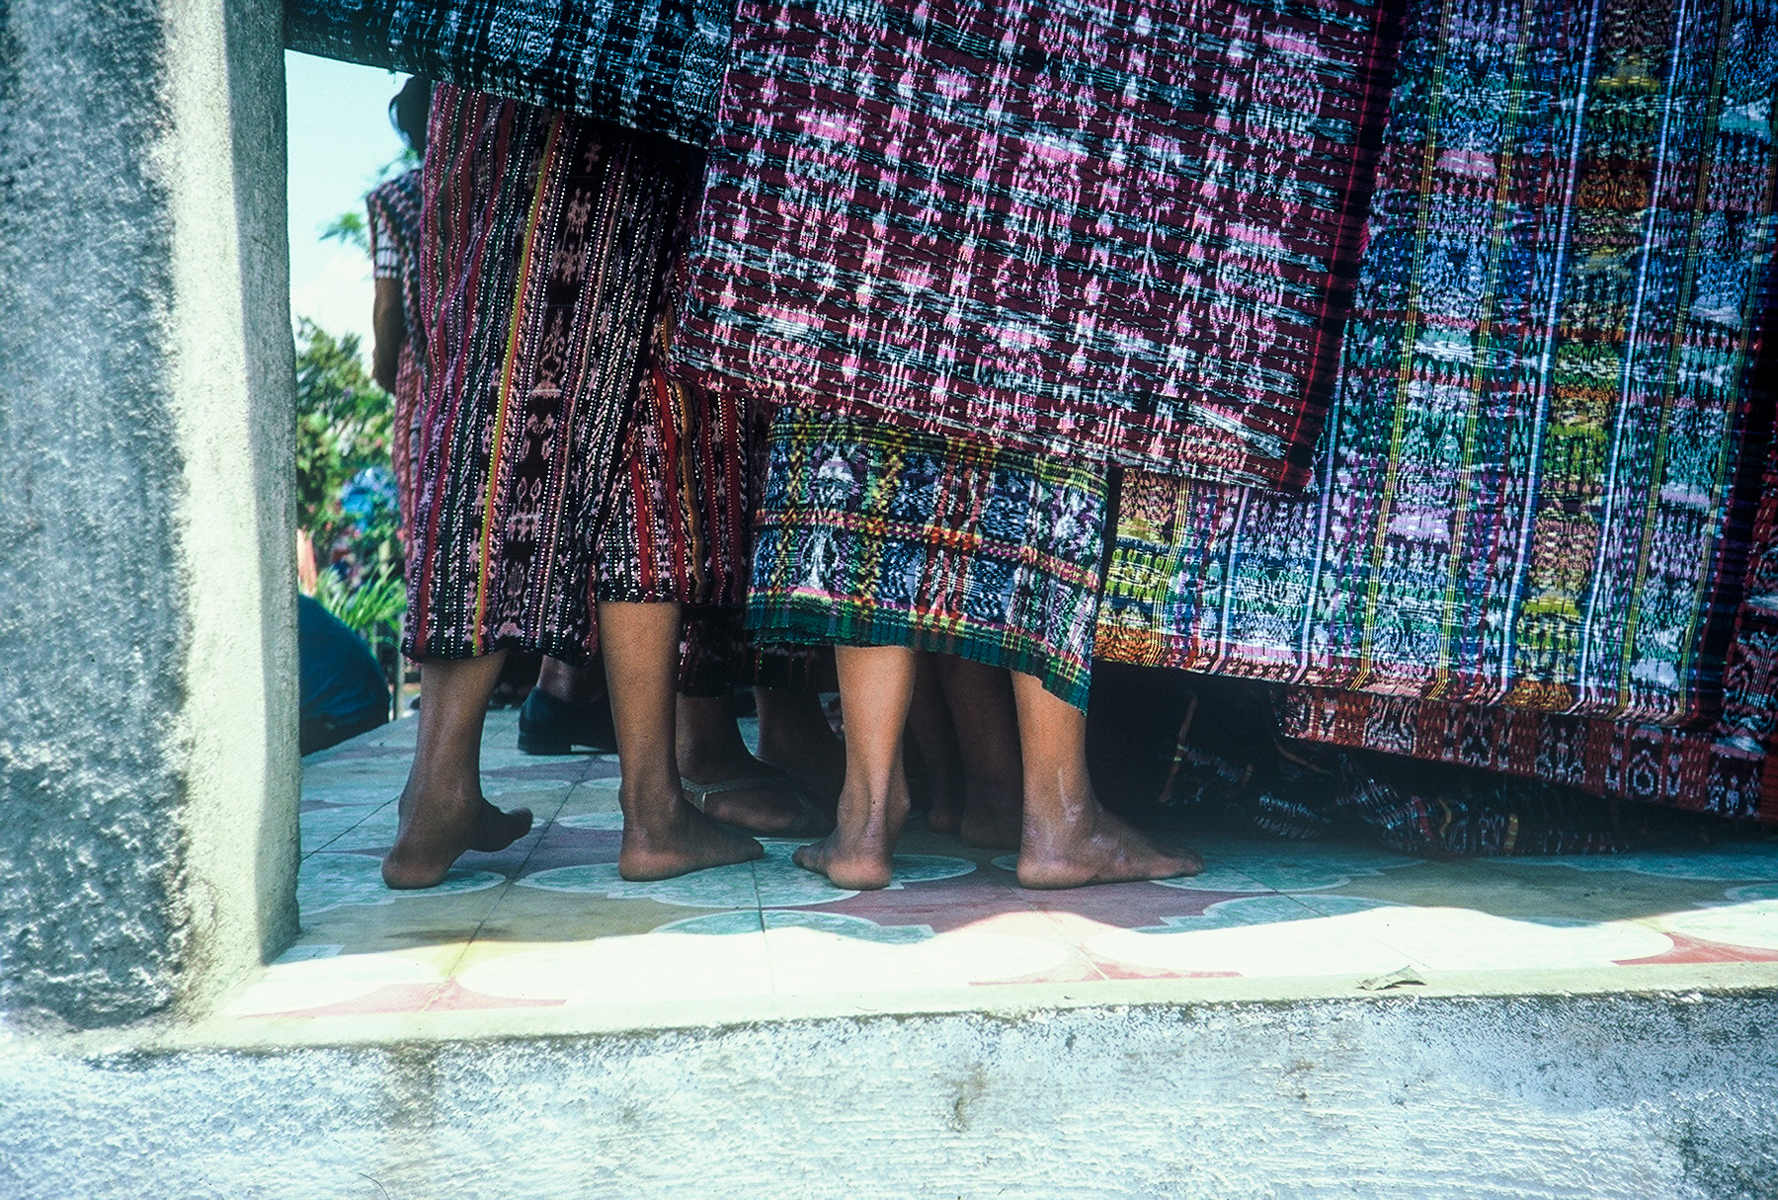 Santiago on Atitlán, Guatemala ©1987 Lisa Berman